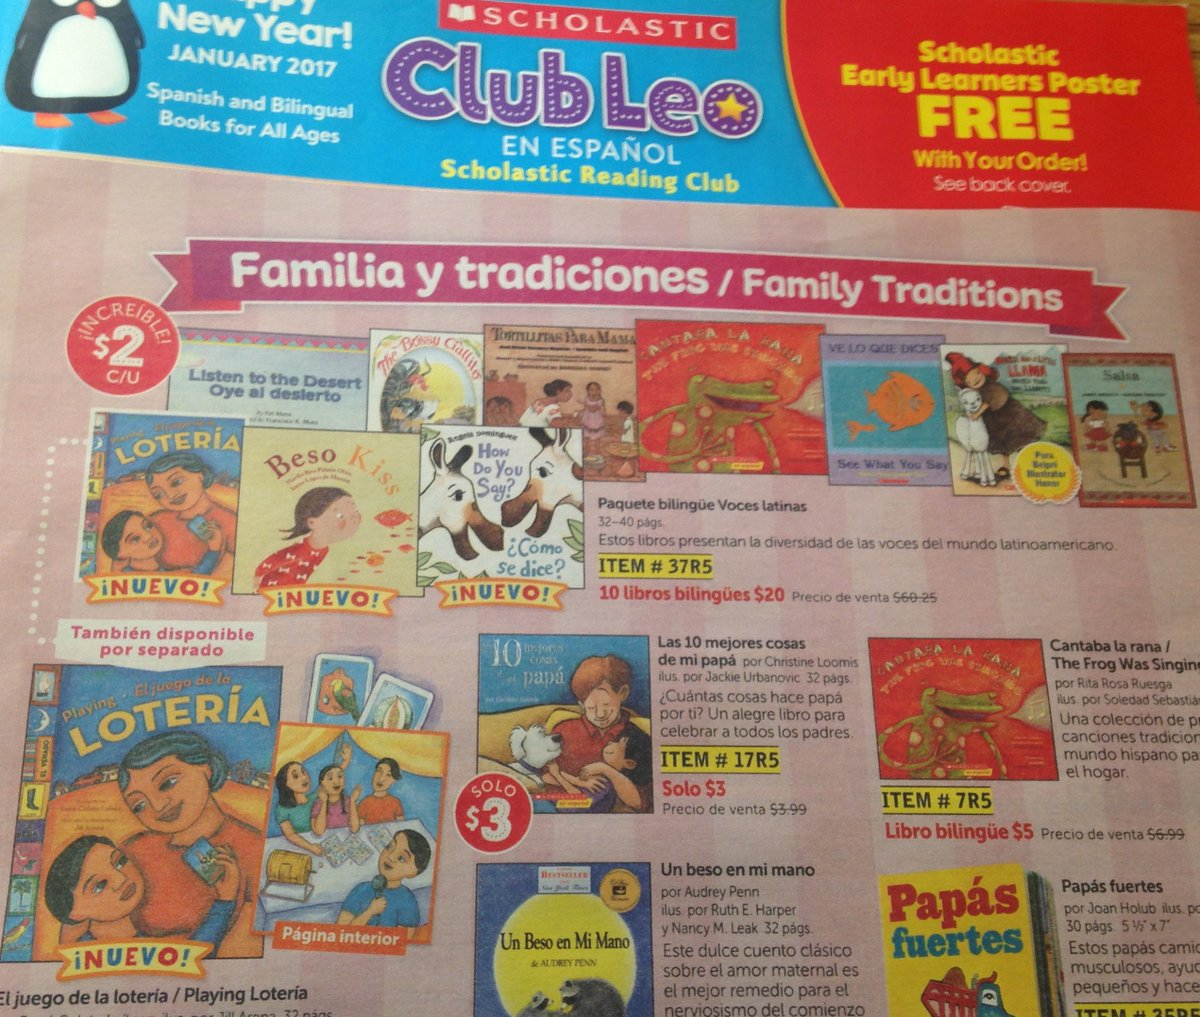 Rene Colato Lainez On Twitter Great News Loteria Is Part Of The Scholastic Club Leo En Espanol My Students Will Want To Order Some Books